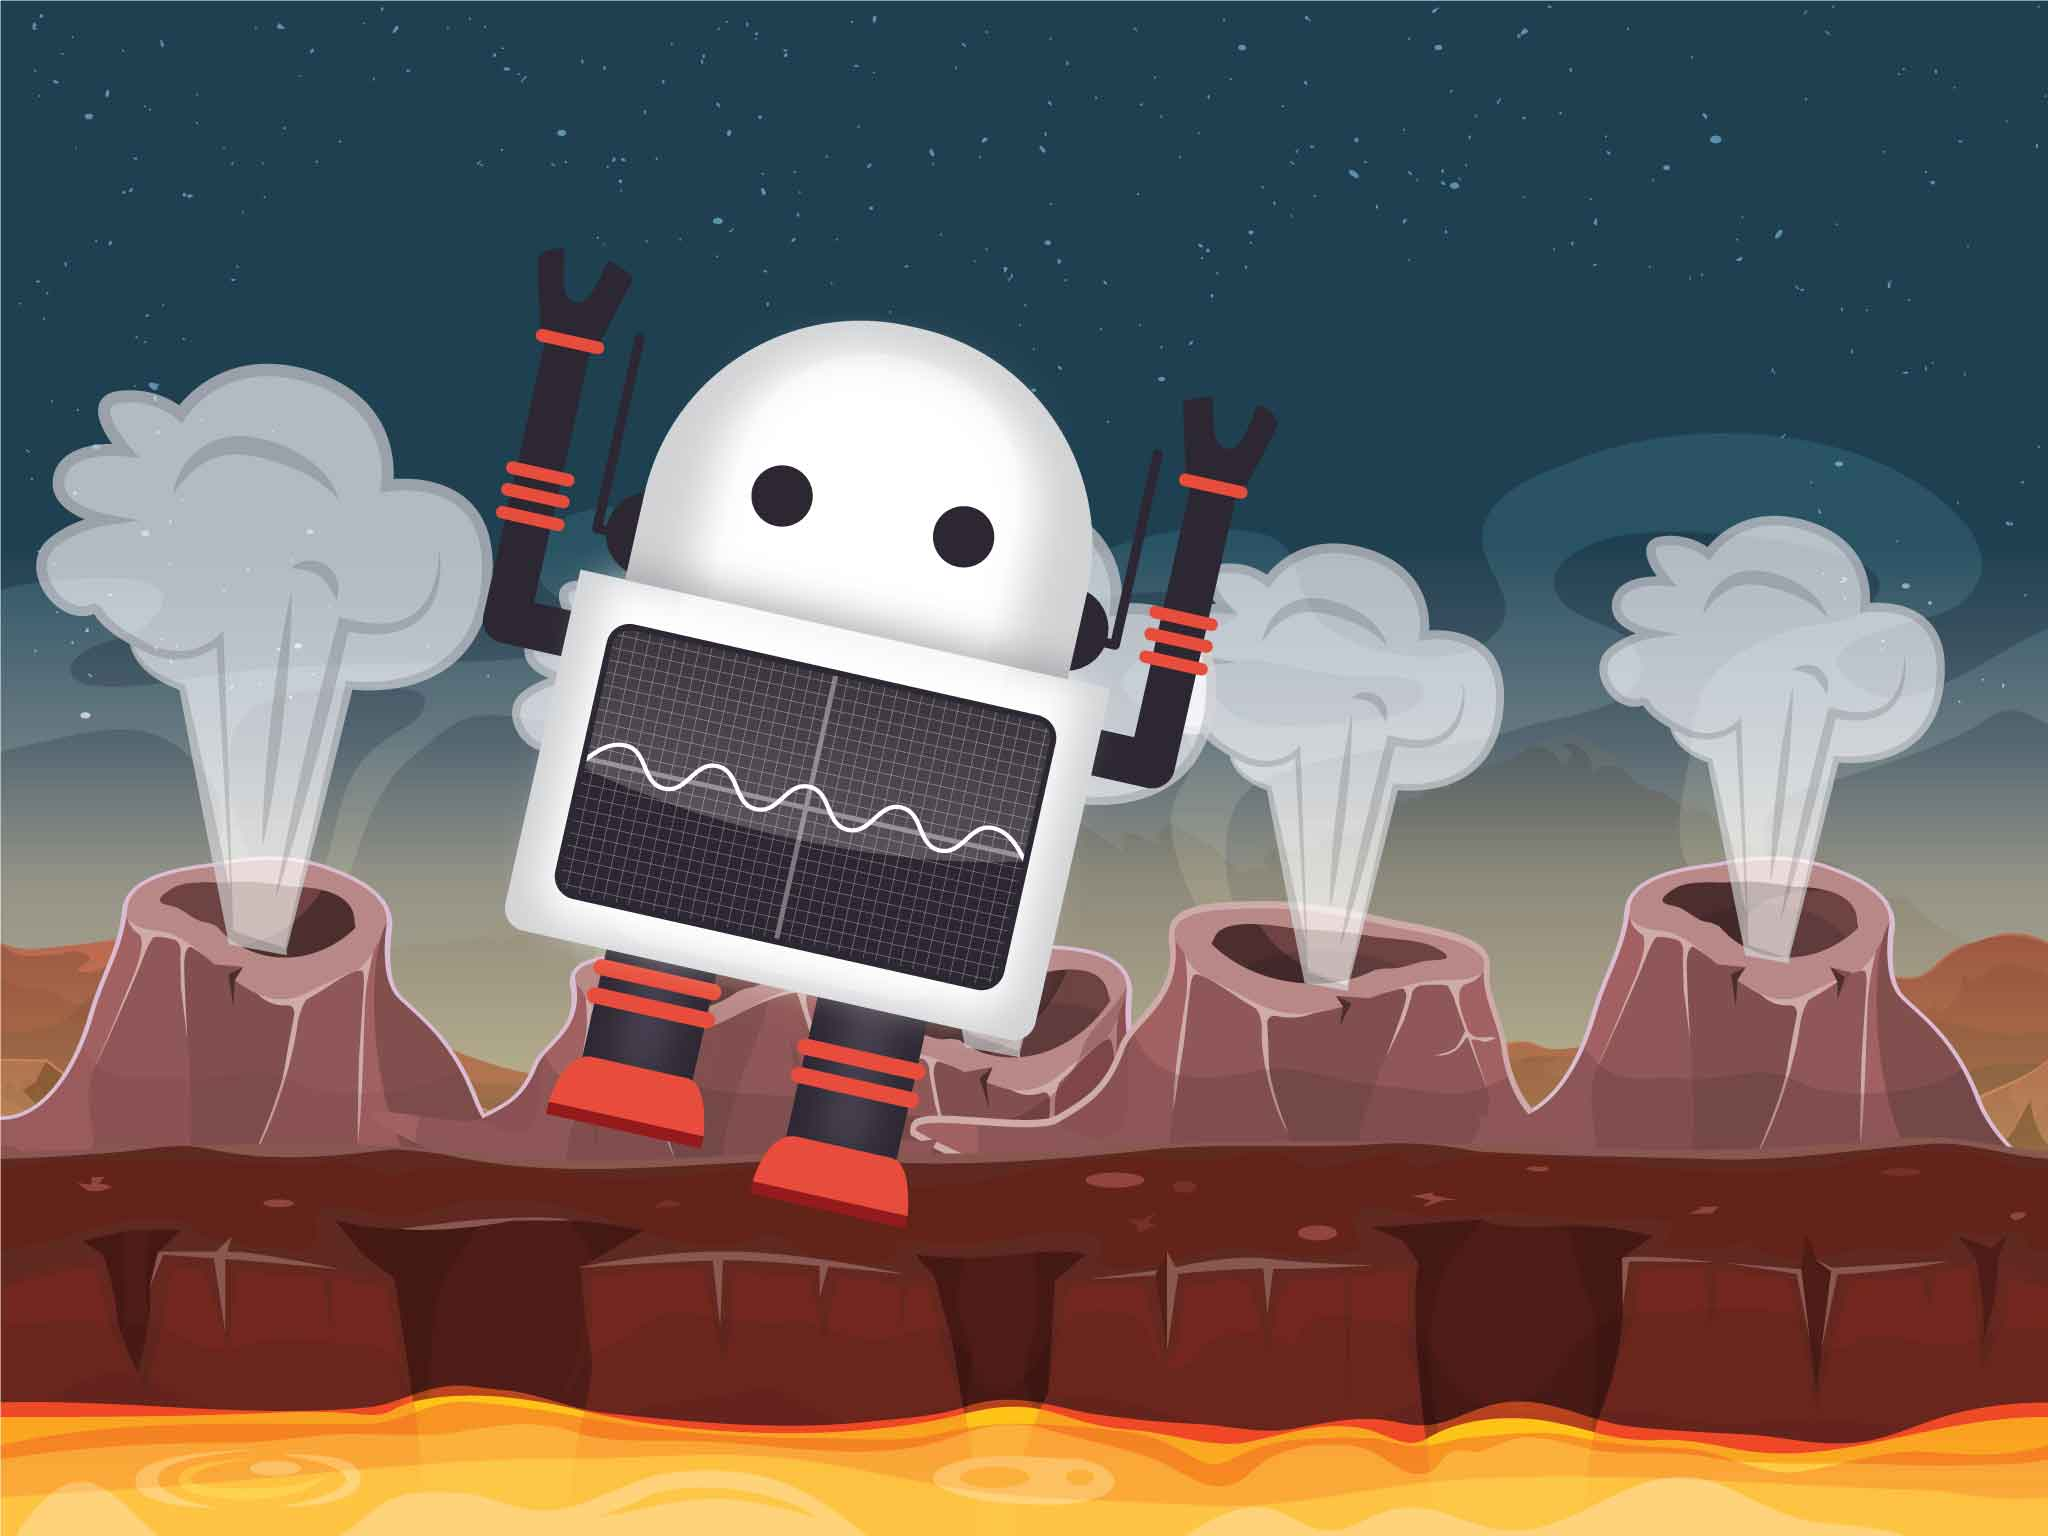 Screen 4: Robot runs off the screen as volcanic jets erupt, signaling critter arrival.